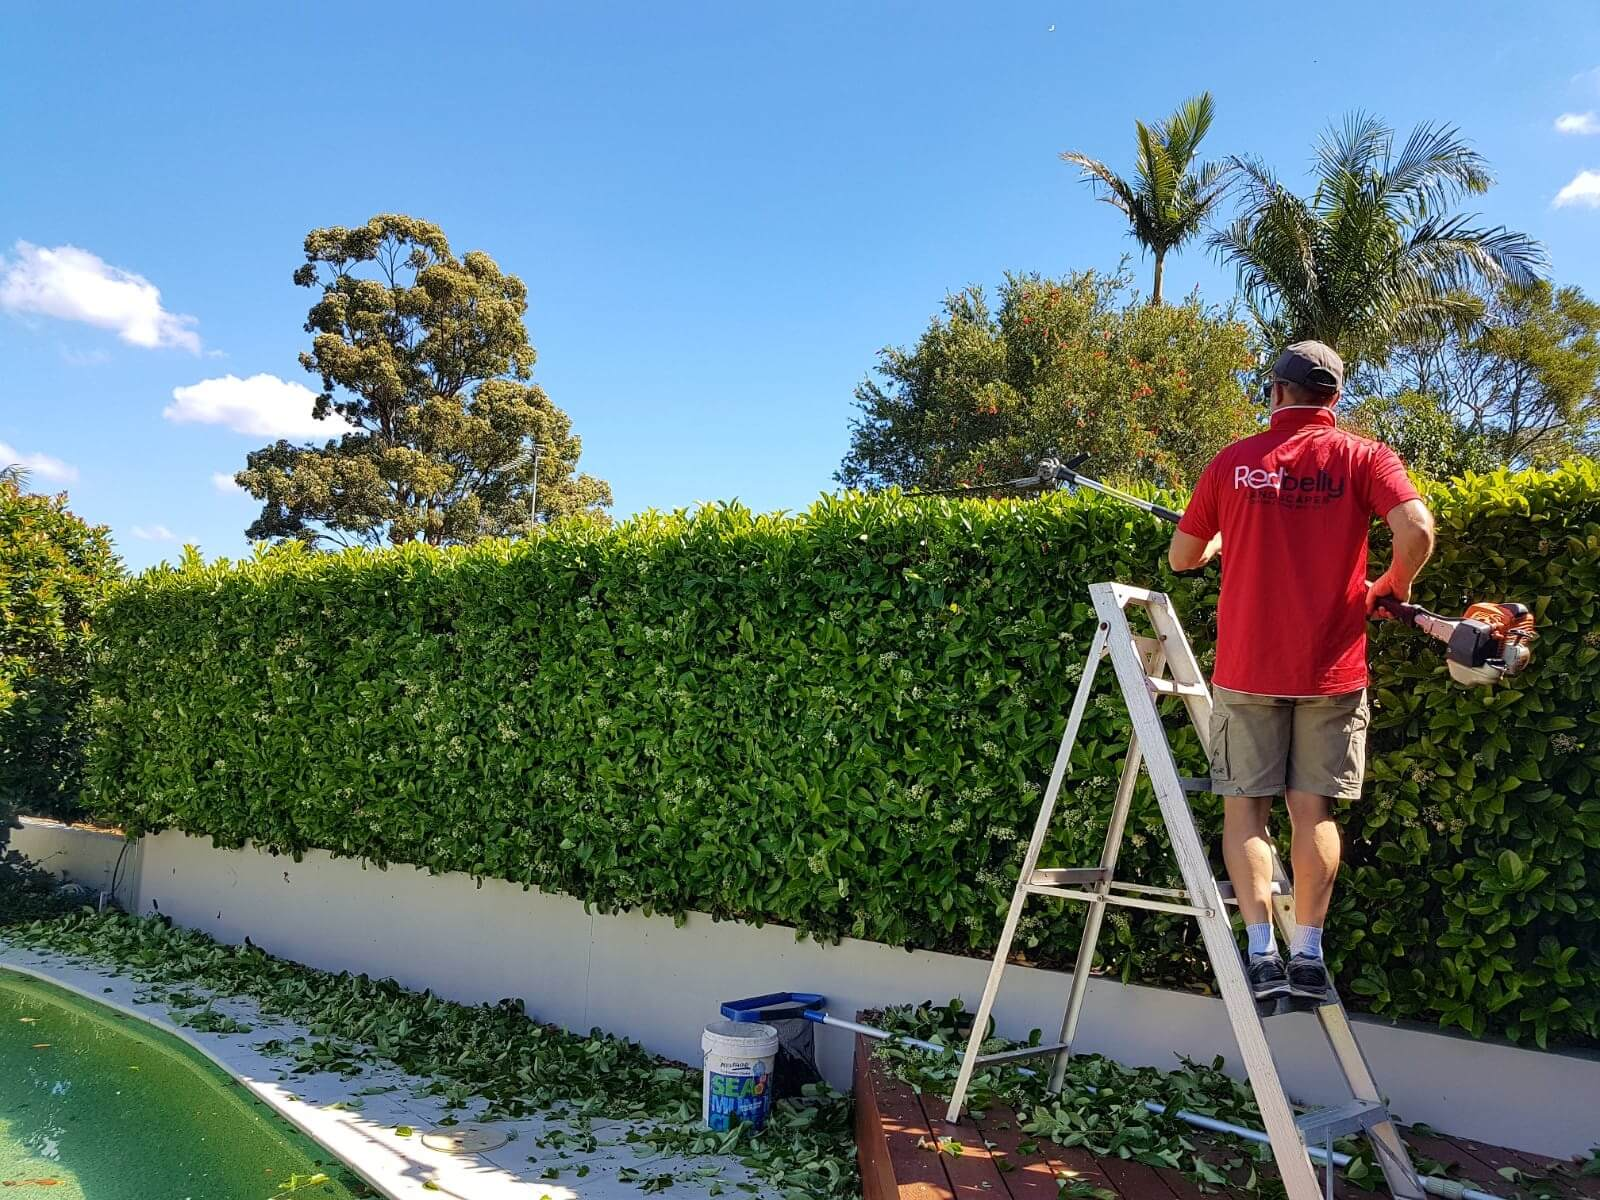 Redbelly Landscapes - Hedge Trimming Services